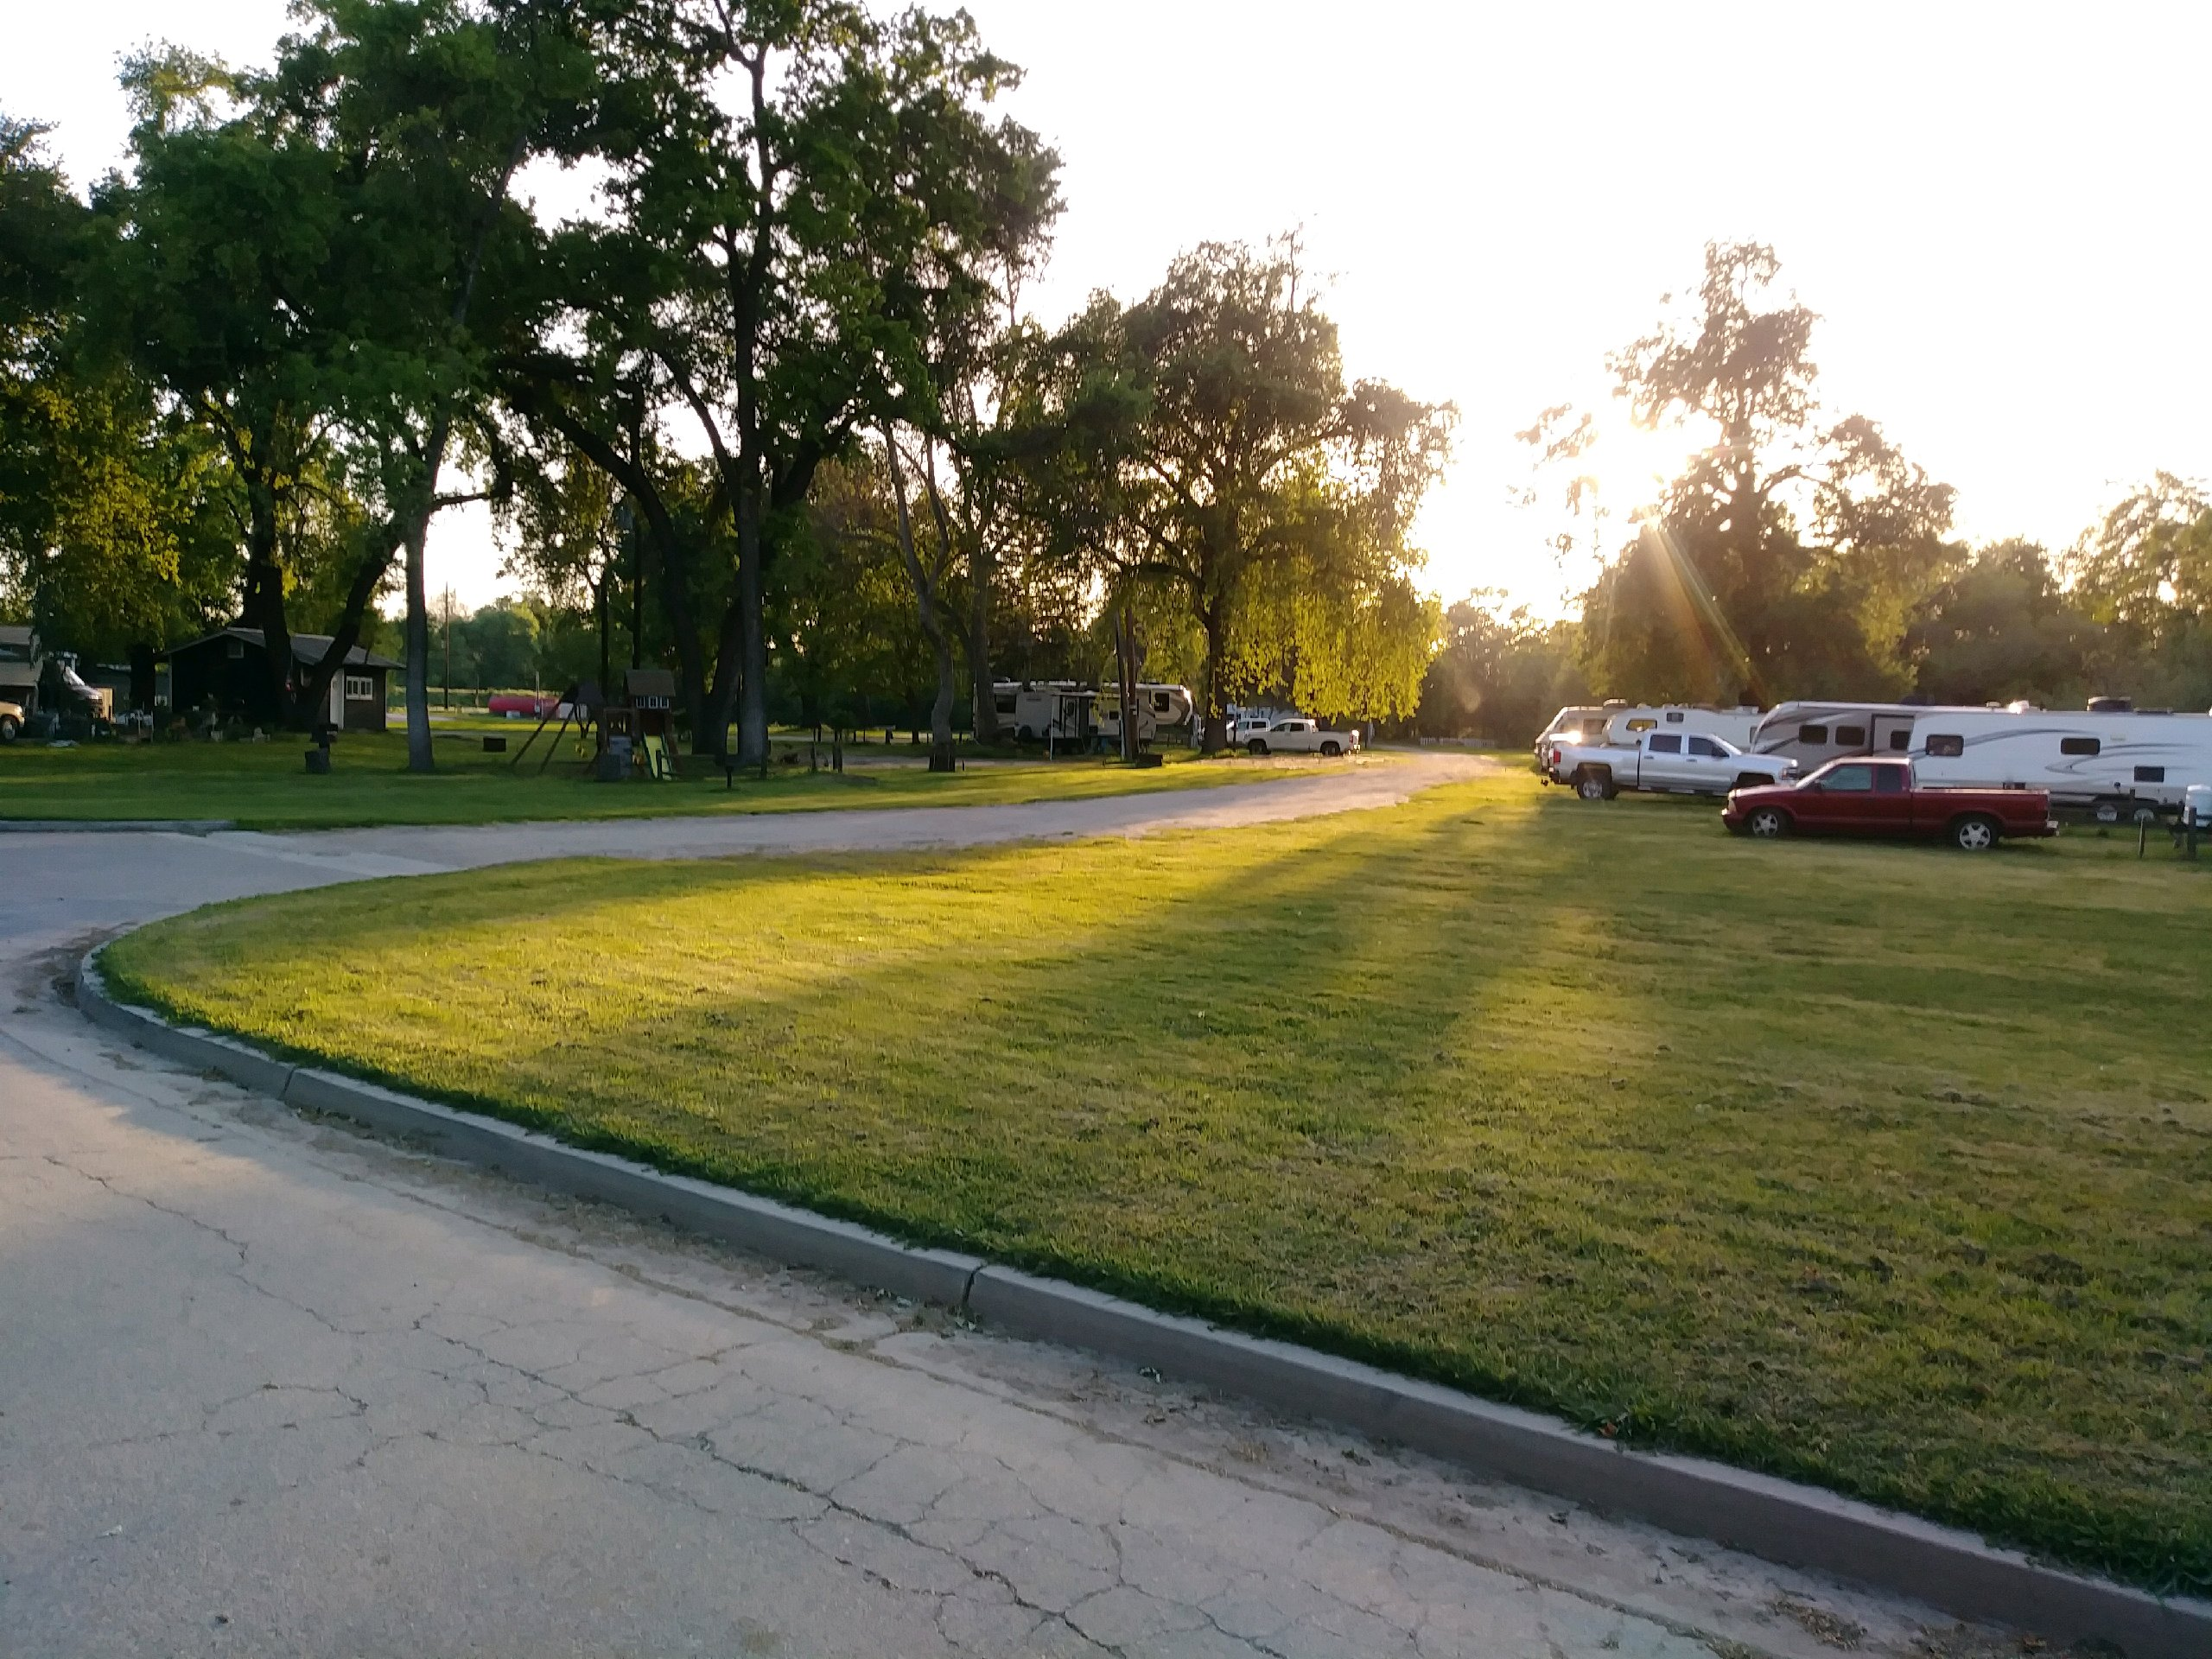 Riverbend Rv Park/ early evening